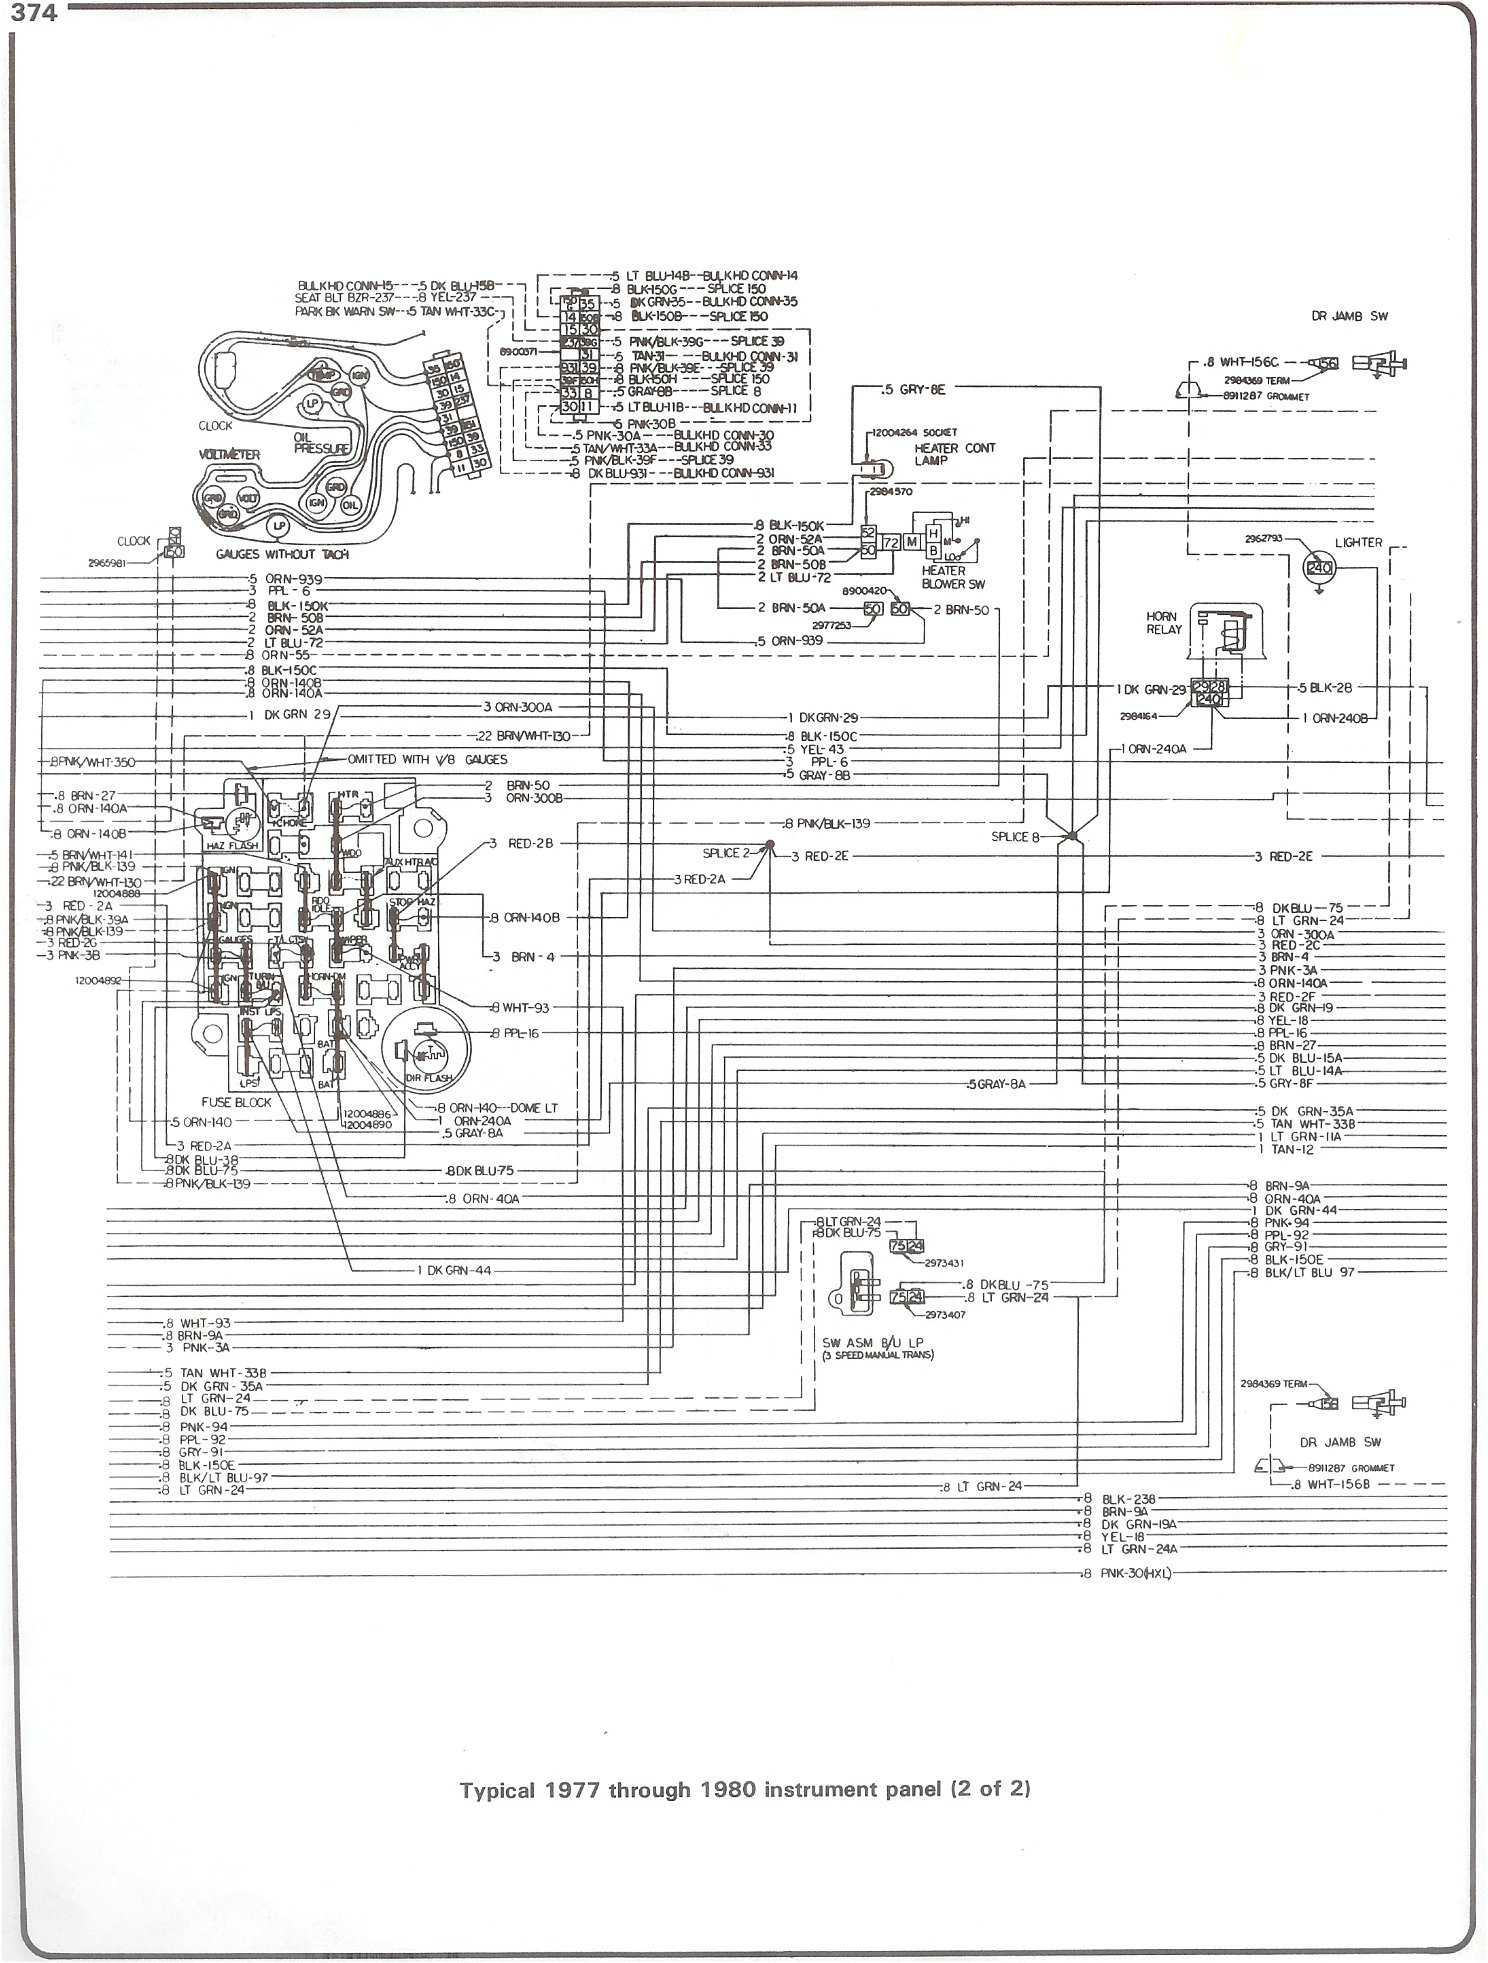 1981 Gmc Fuse Box Electronic Wiring Diagrams Jimmy Diagram Starting Know About U2022 C1500